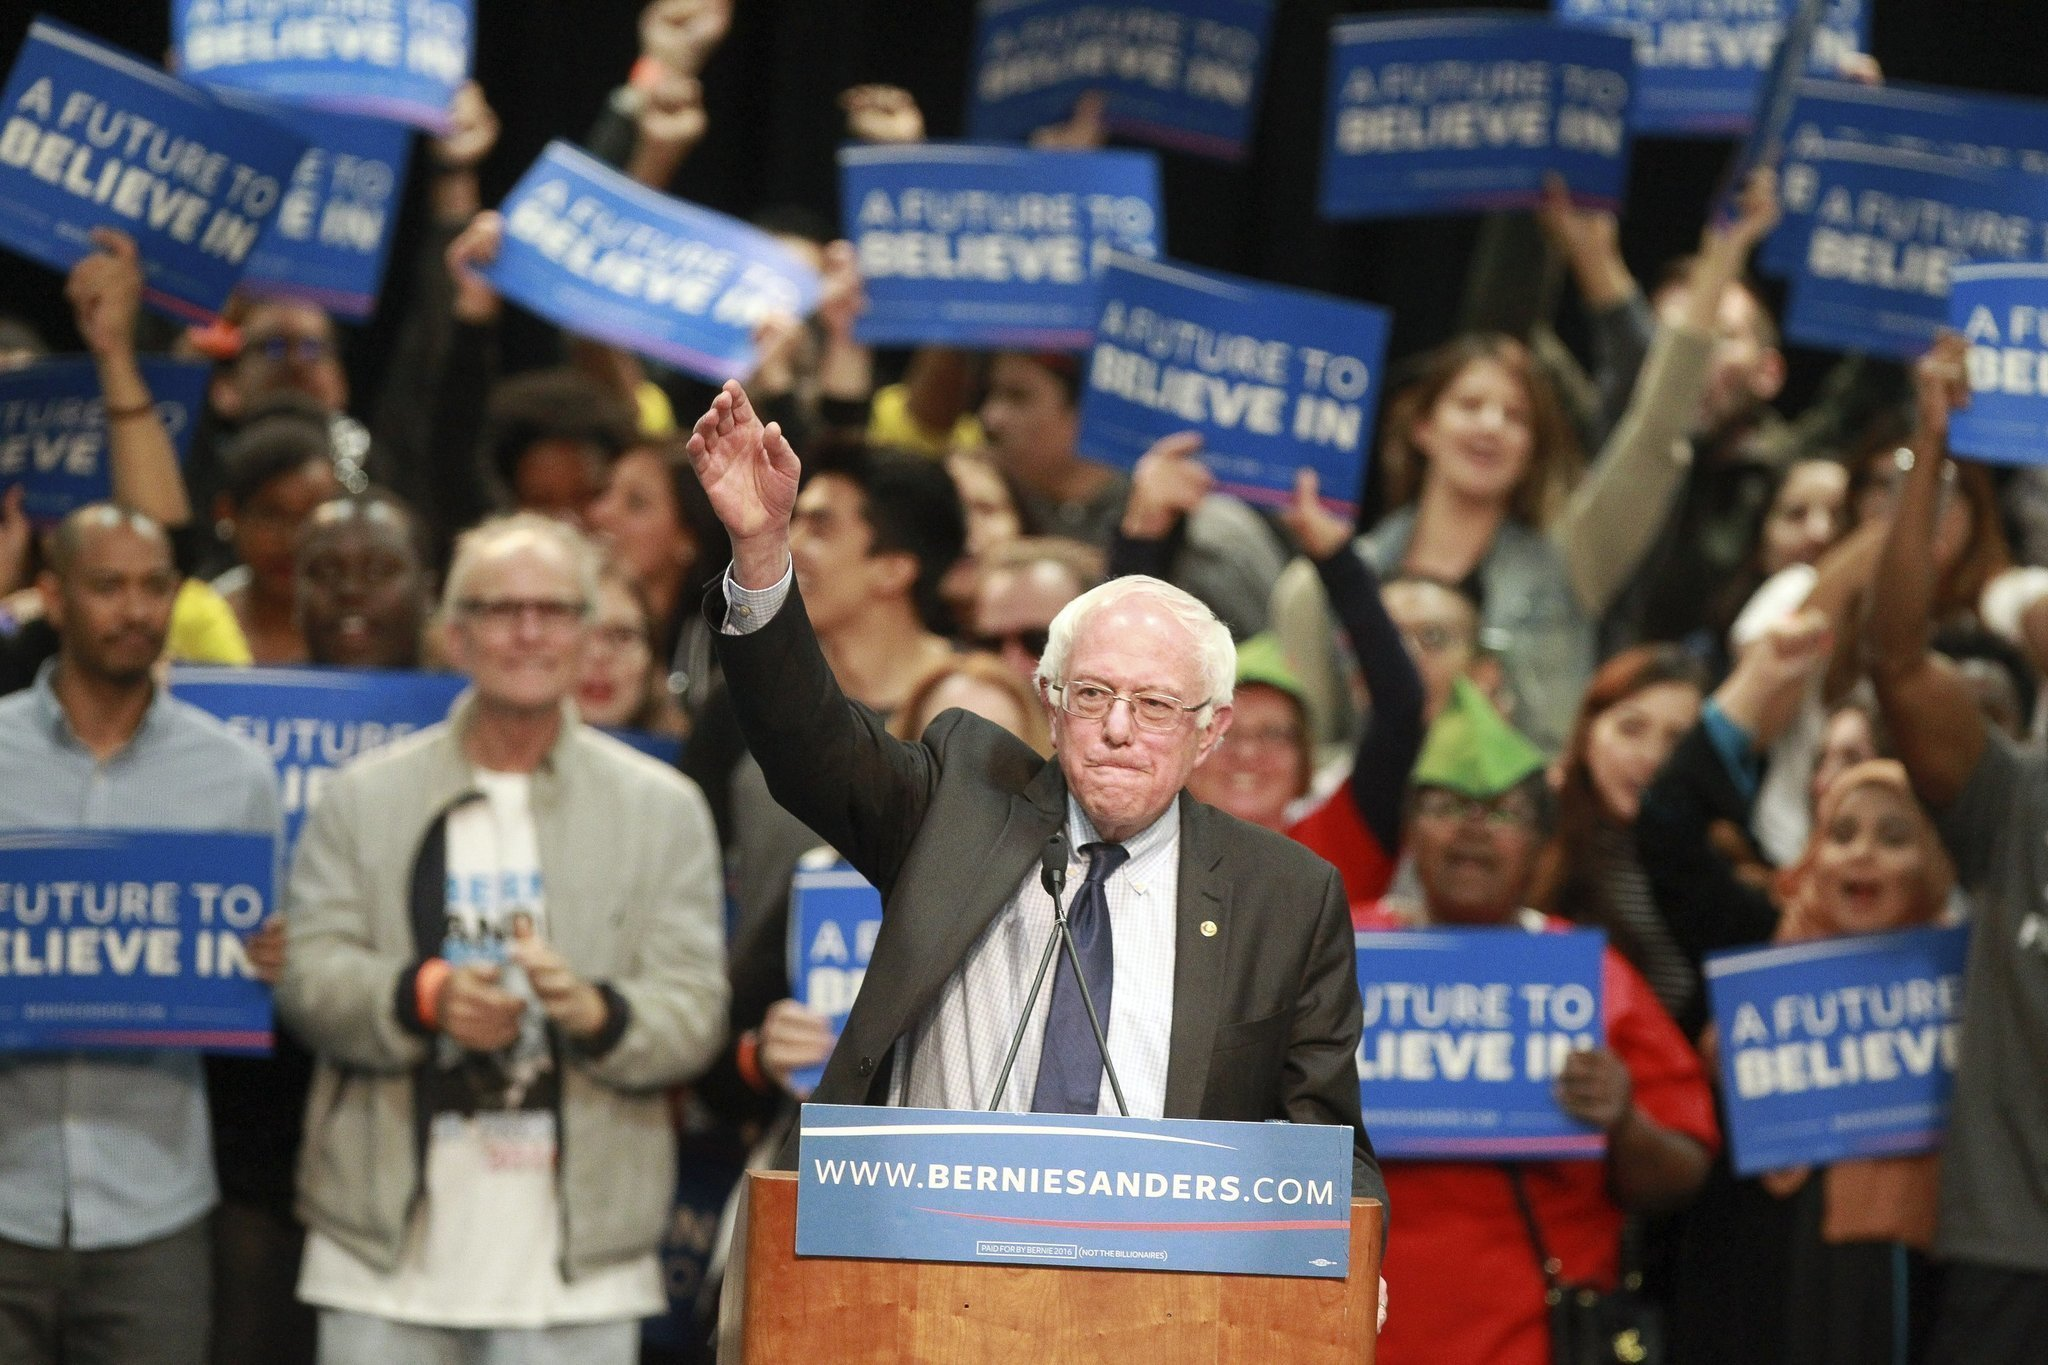 Senator Bernie Sanders (D-VT), then a presidential candidate, speaks at a campaign rally in San Diego in 2016 ( Image )